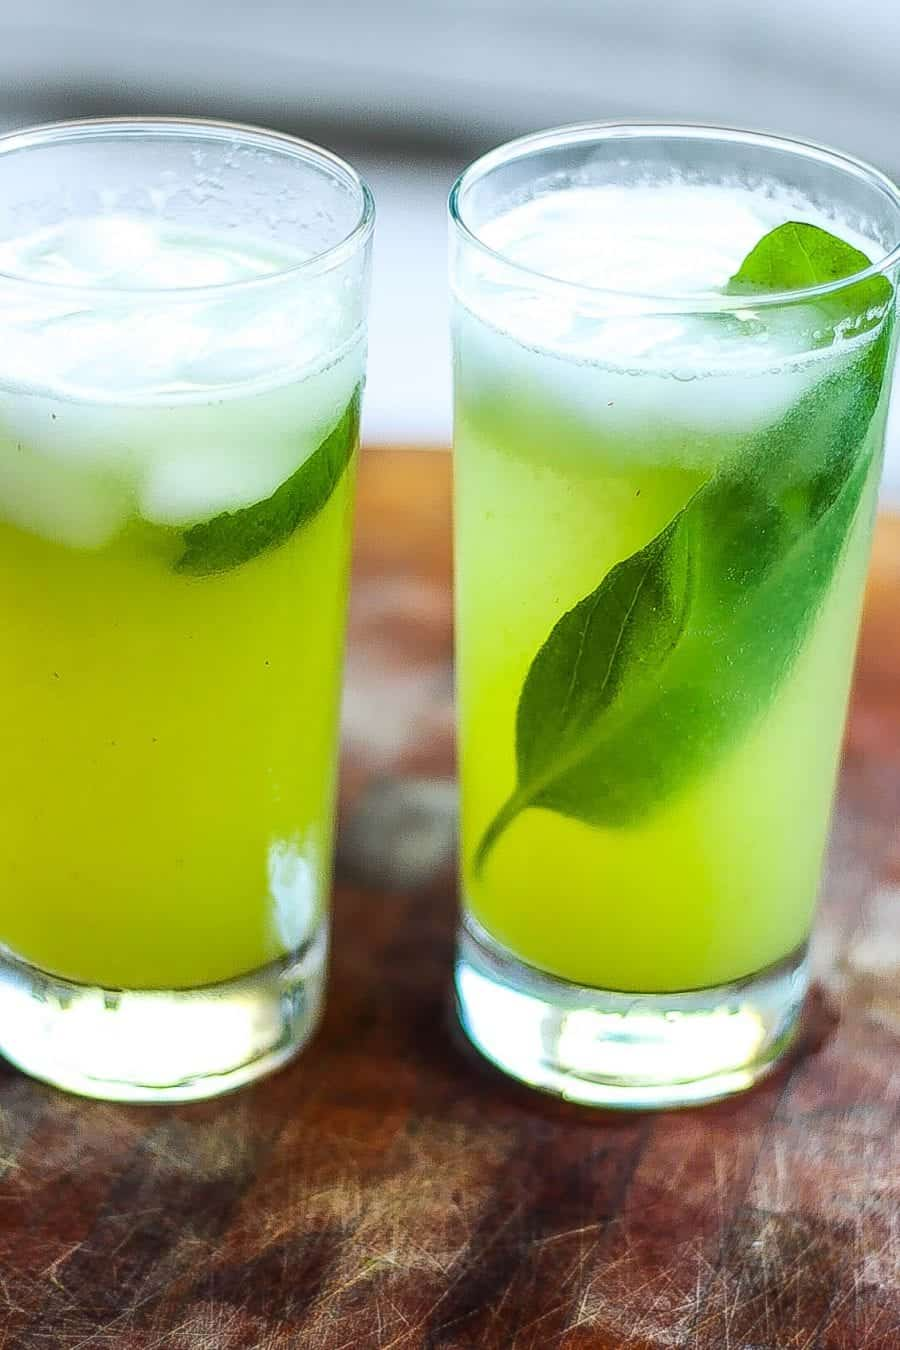 Refreshing recipe for homemade sparkling melon cucumber soda featuring ripe melon and cucumbers elevated with citrus lime juice and fresh basil.